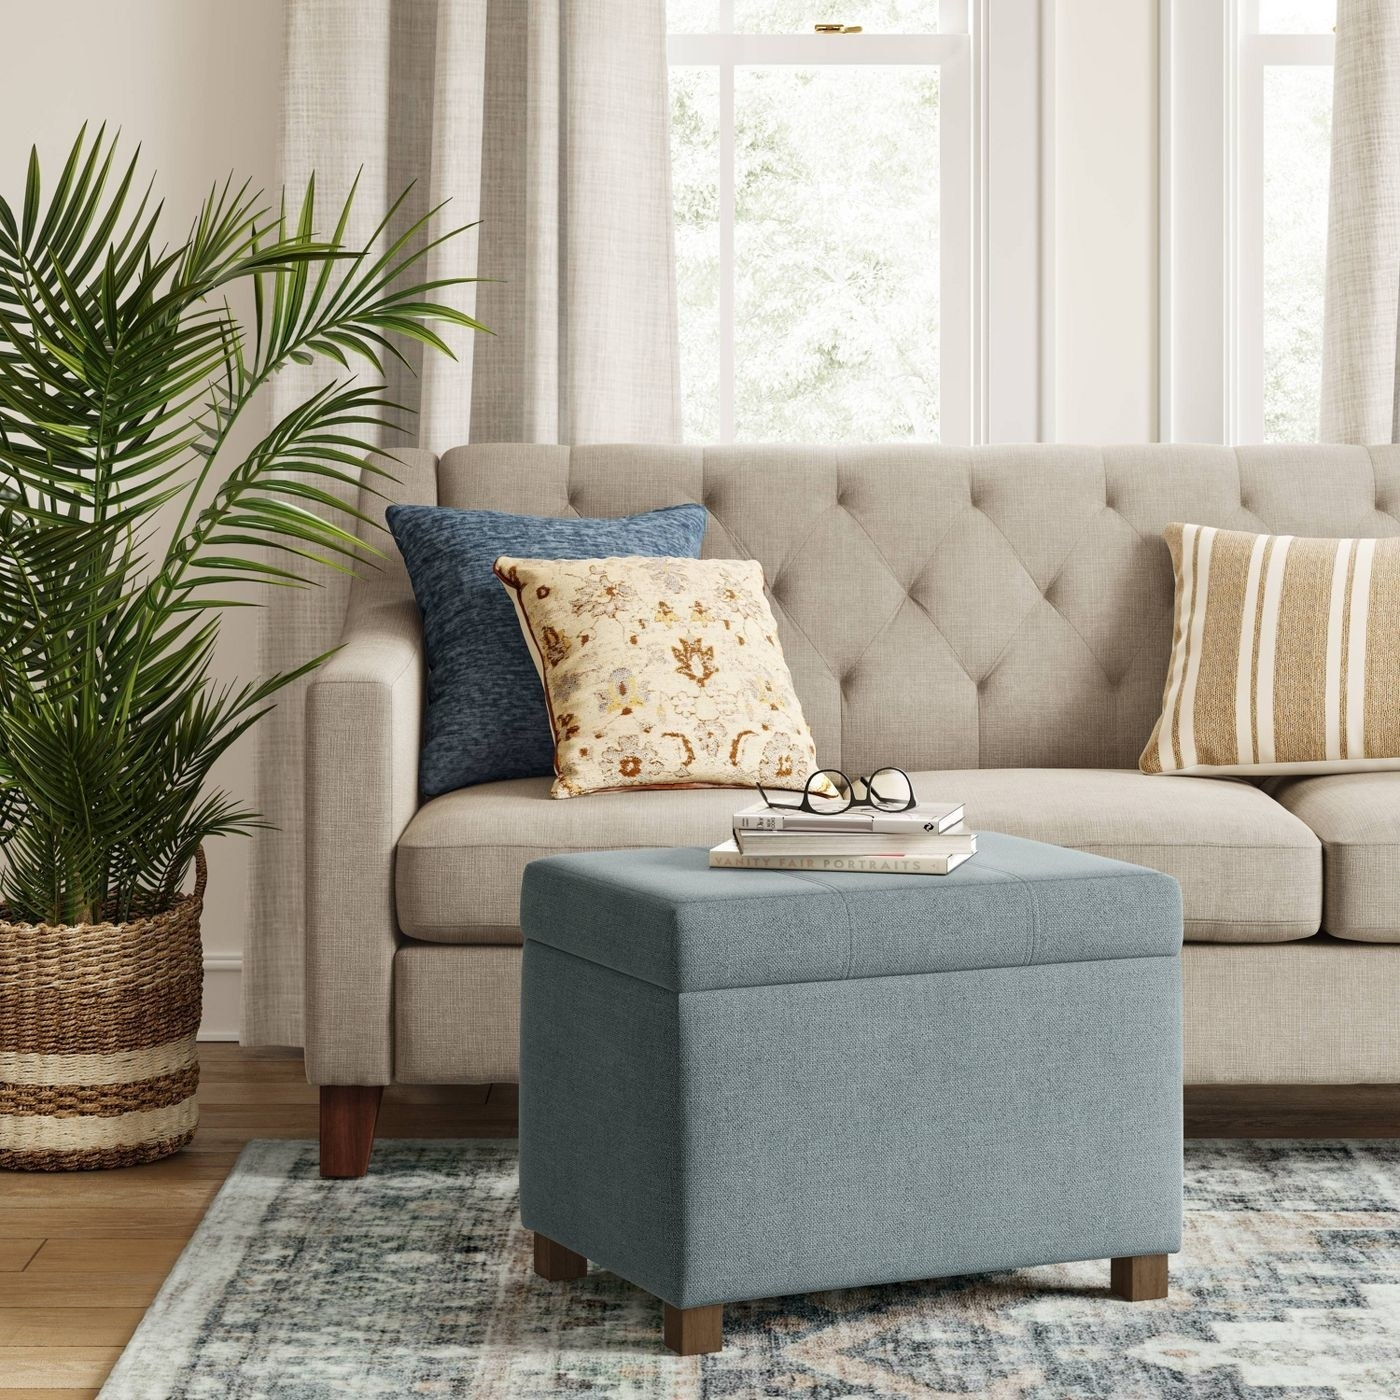 light blue upholstered rectangular ottoman with lid in a room